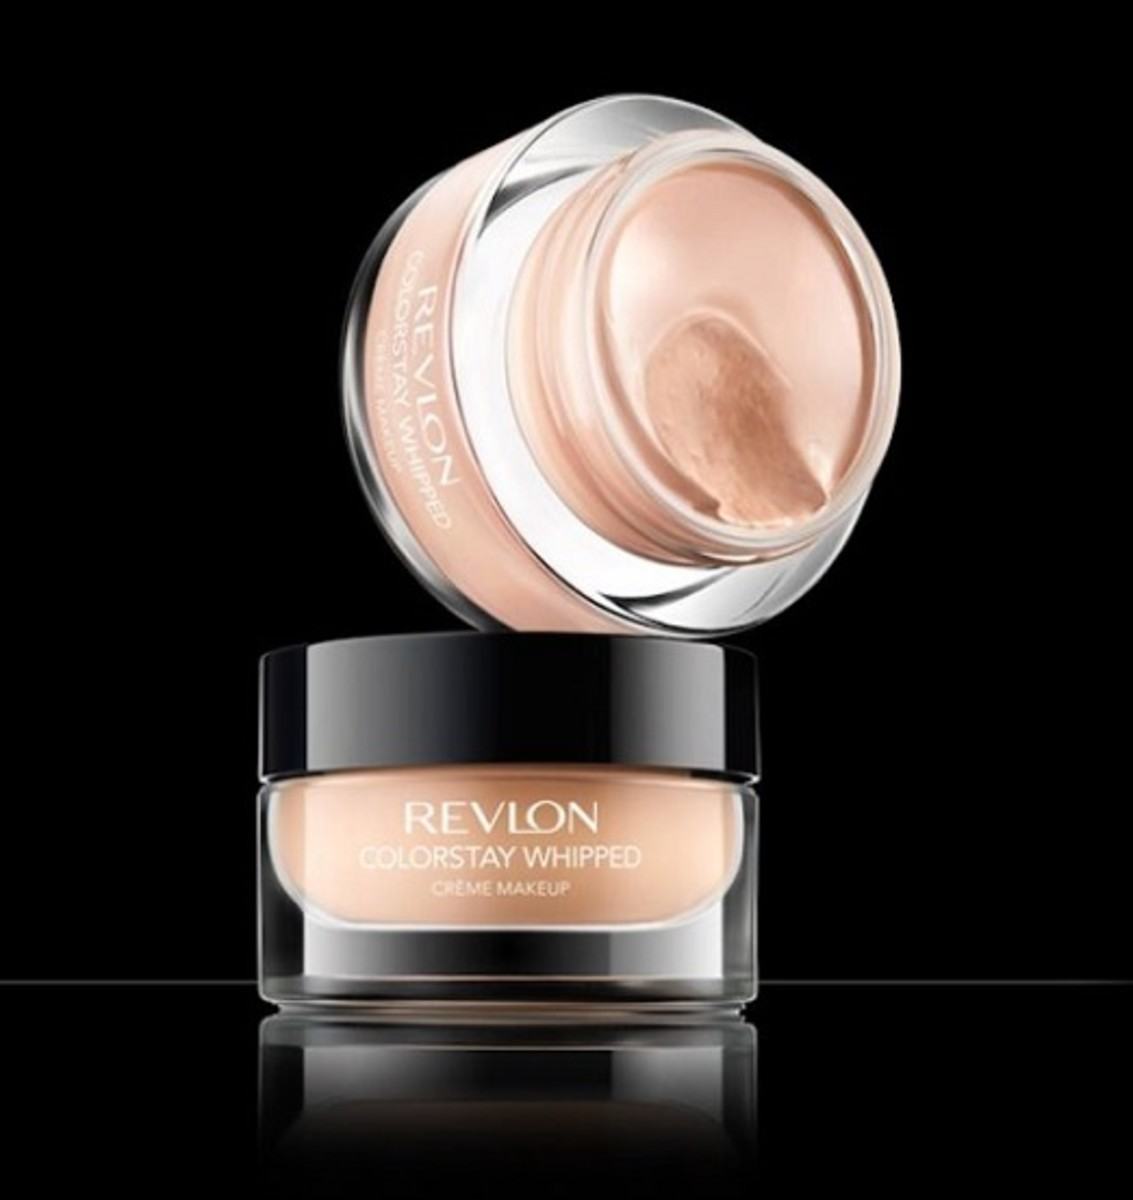 Revlon color stay whipped cream